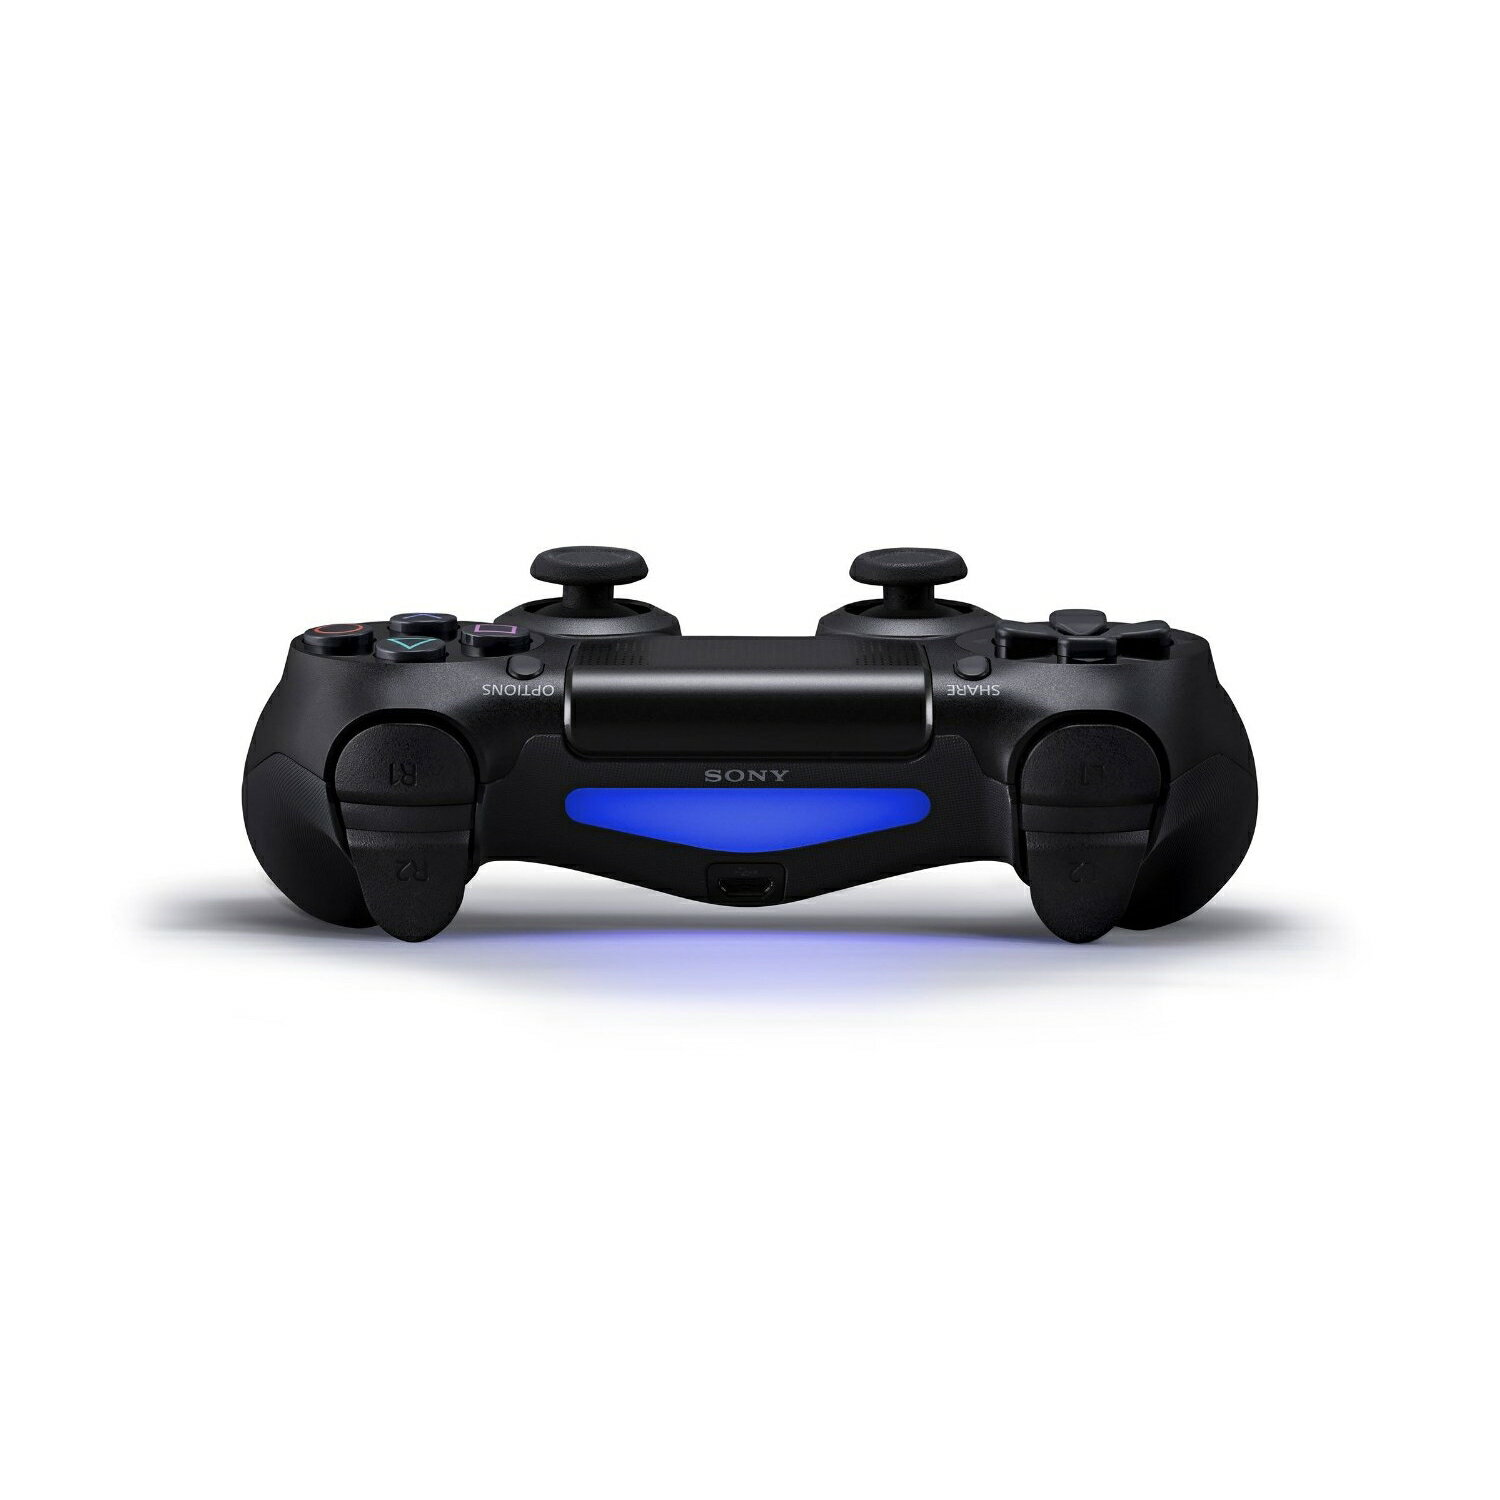 Sony PS4 DualShock 4 Controller - Black (PlayStation 4) 4